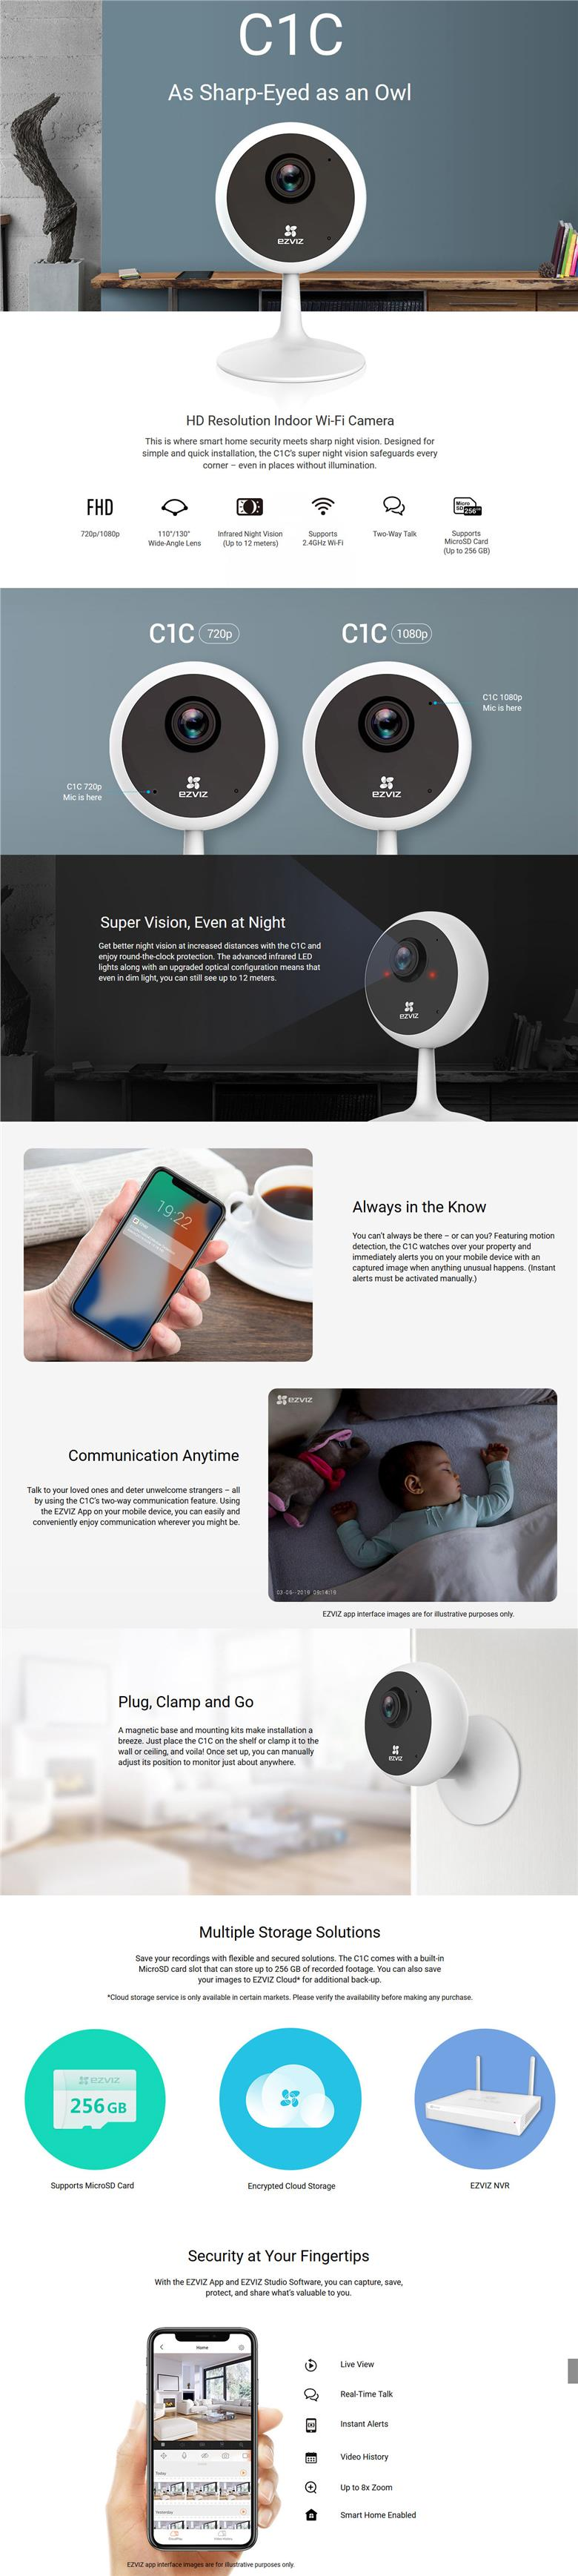 EZVIZ C1C 720P HD HOME INDOOR WI-FI CCTV IP SECURITY CAMERA